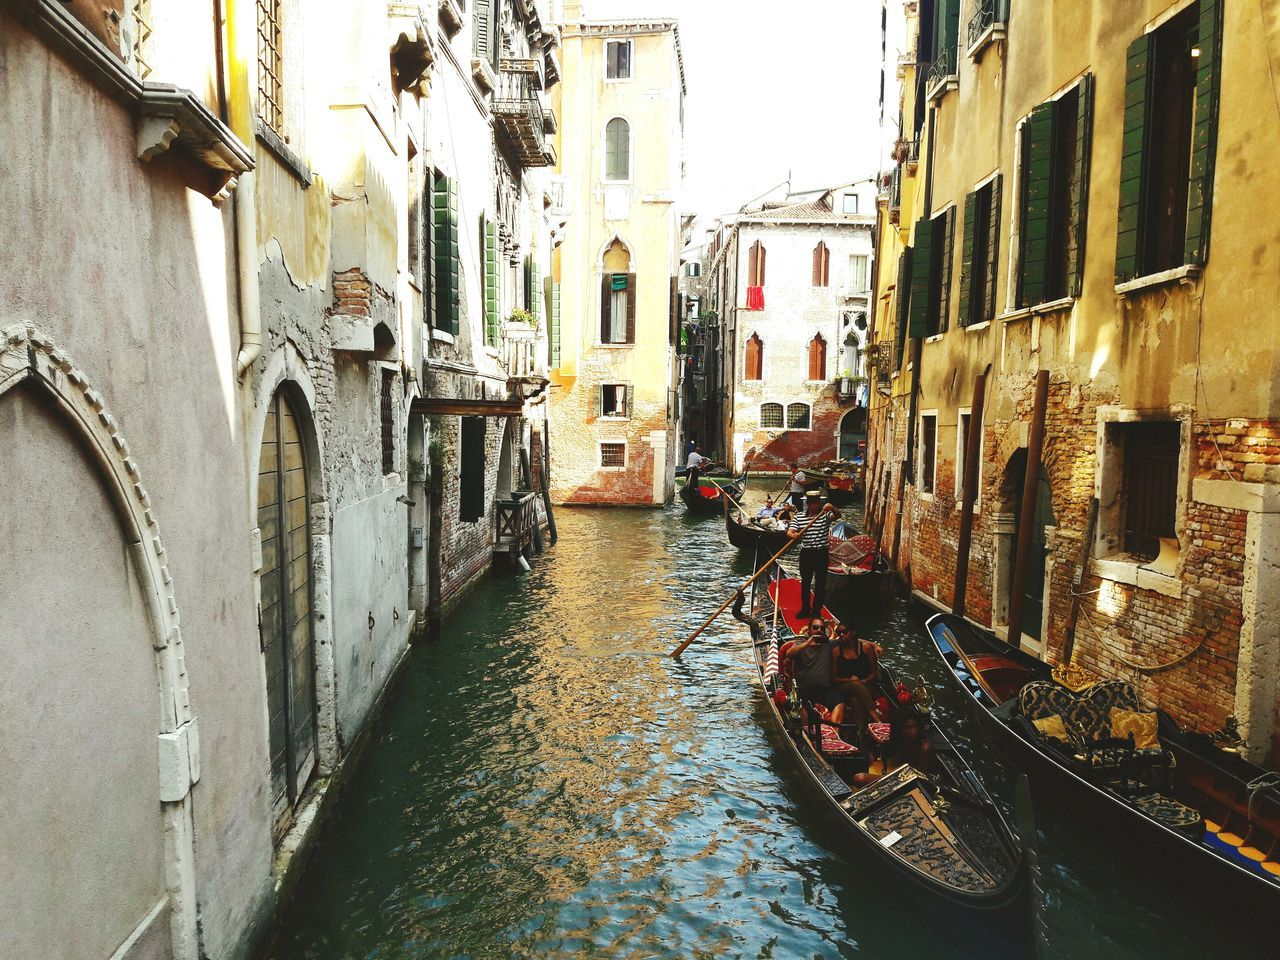 architecture, building exterior, canal, built structure, nautical vessel, water, window, residential building, day, gondola - traditional boat, transportation, outdoors, no people, city